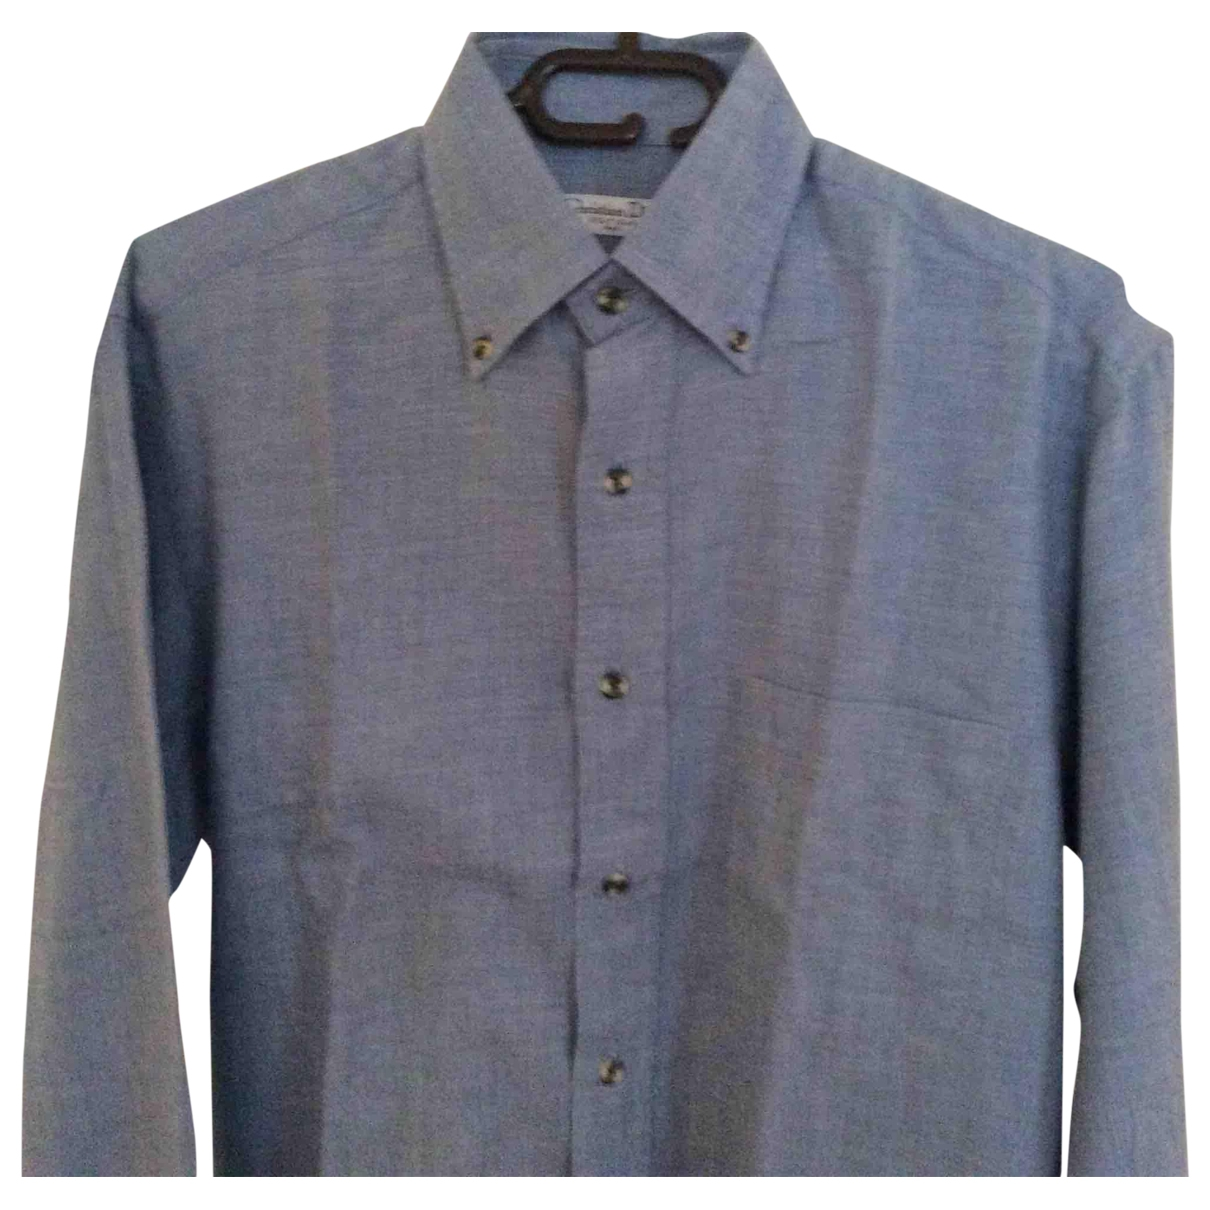 Dior Homme \N Blue Cotton Shirts for Men 38 EU (tour de cou / collar)